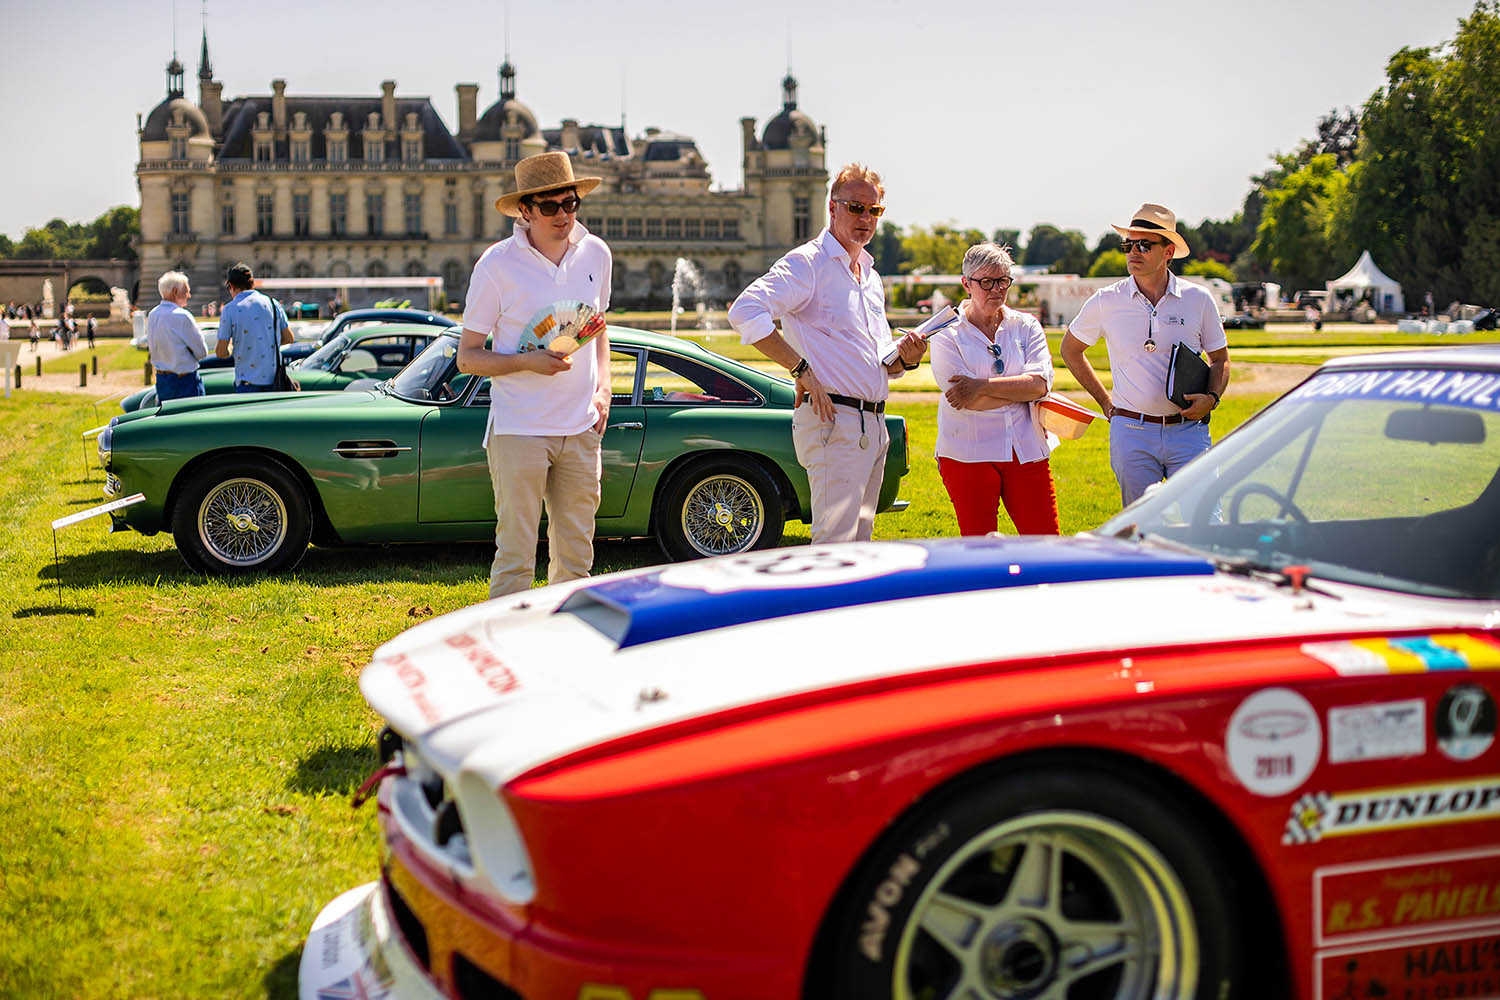 2019_PeterAuto_Chantilly_AlexisGoure_1664.jpg